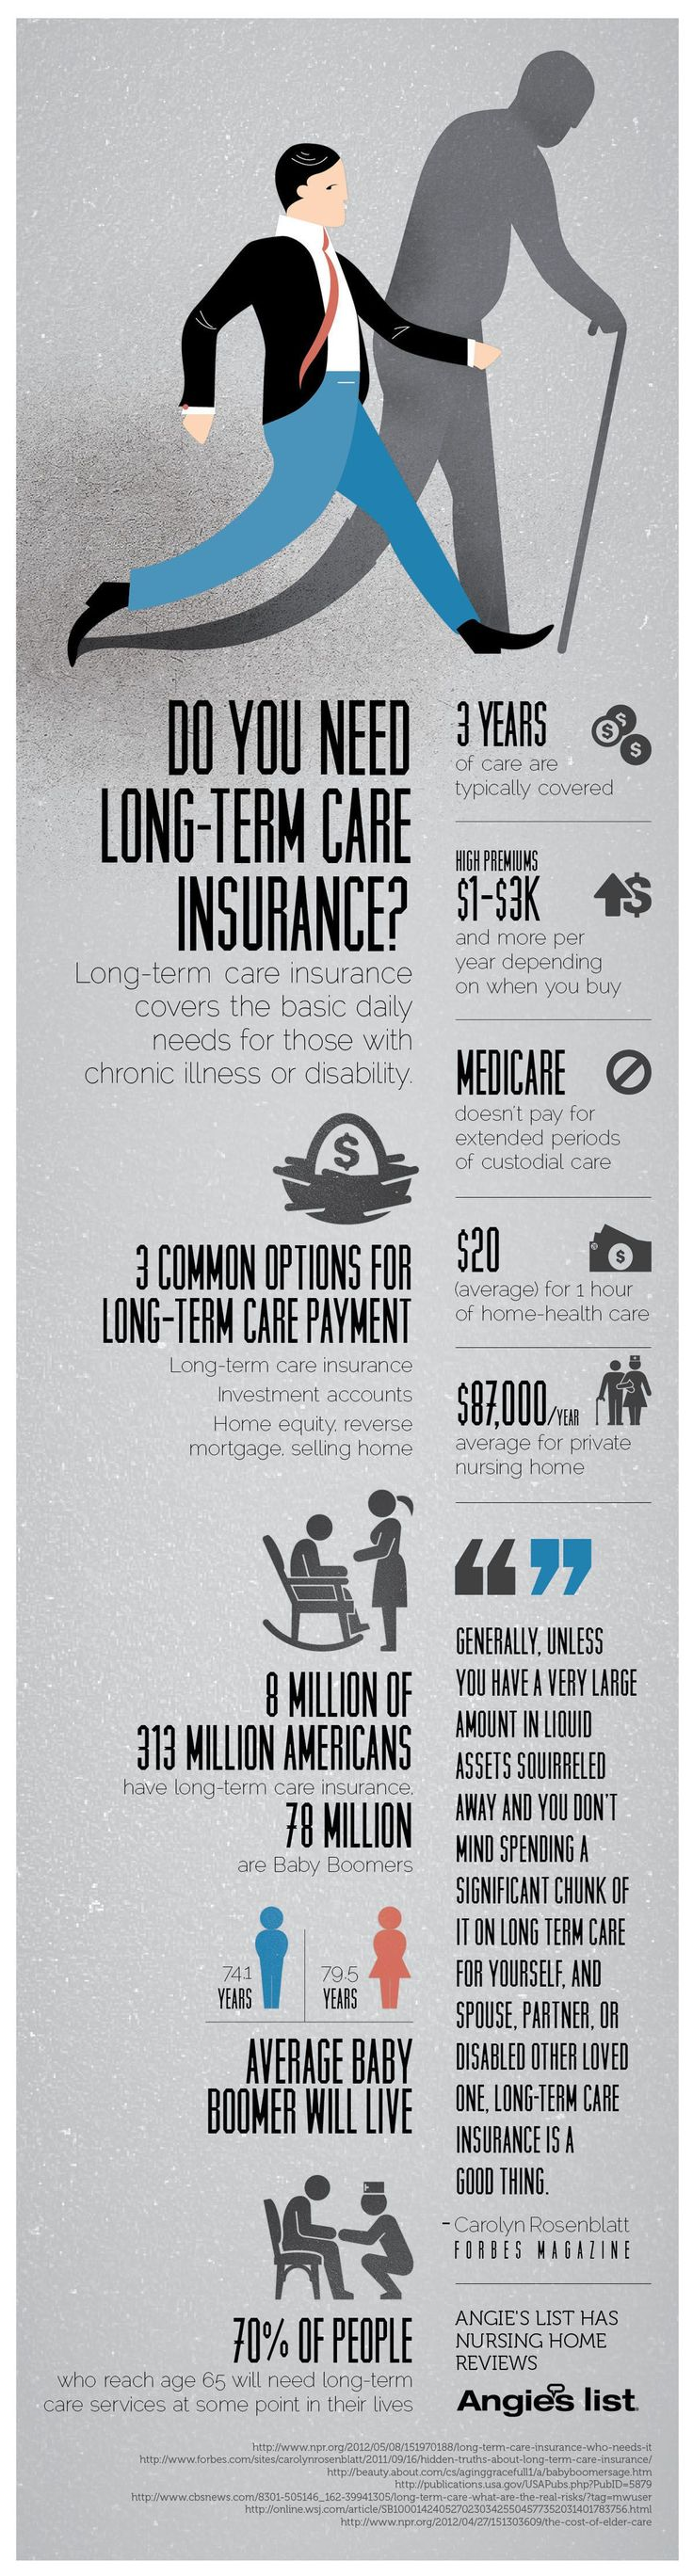 70% of people who reach the age of 65 will need long-term care at some point in their lives, but is long term care insurance right for your financial situation? It's expensive, and a savings and investment strategy might be better for you. In-home care is another option. Take a look at the information in this graphic to help make your decision.